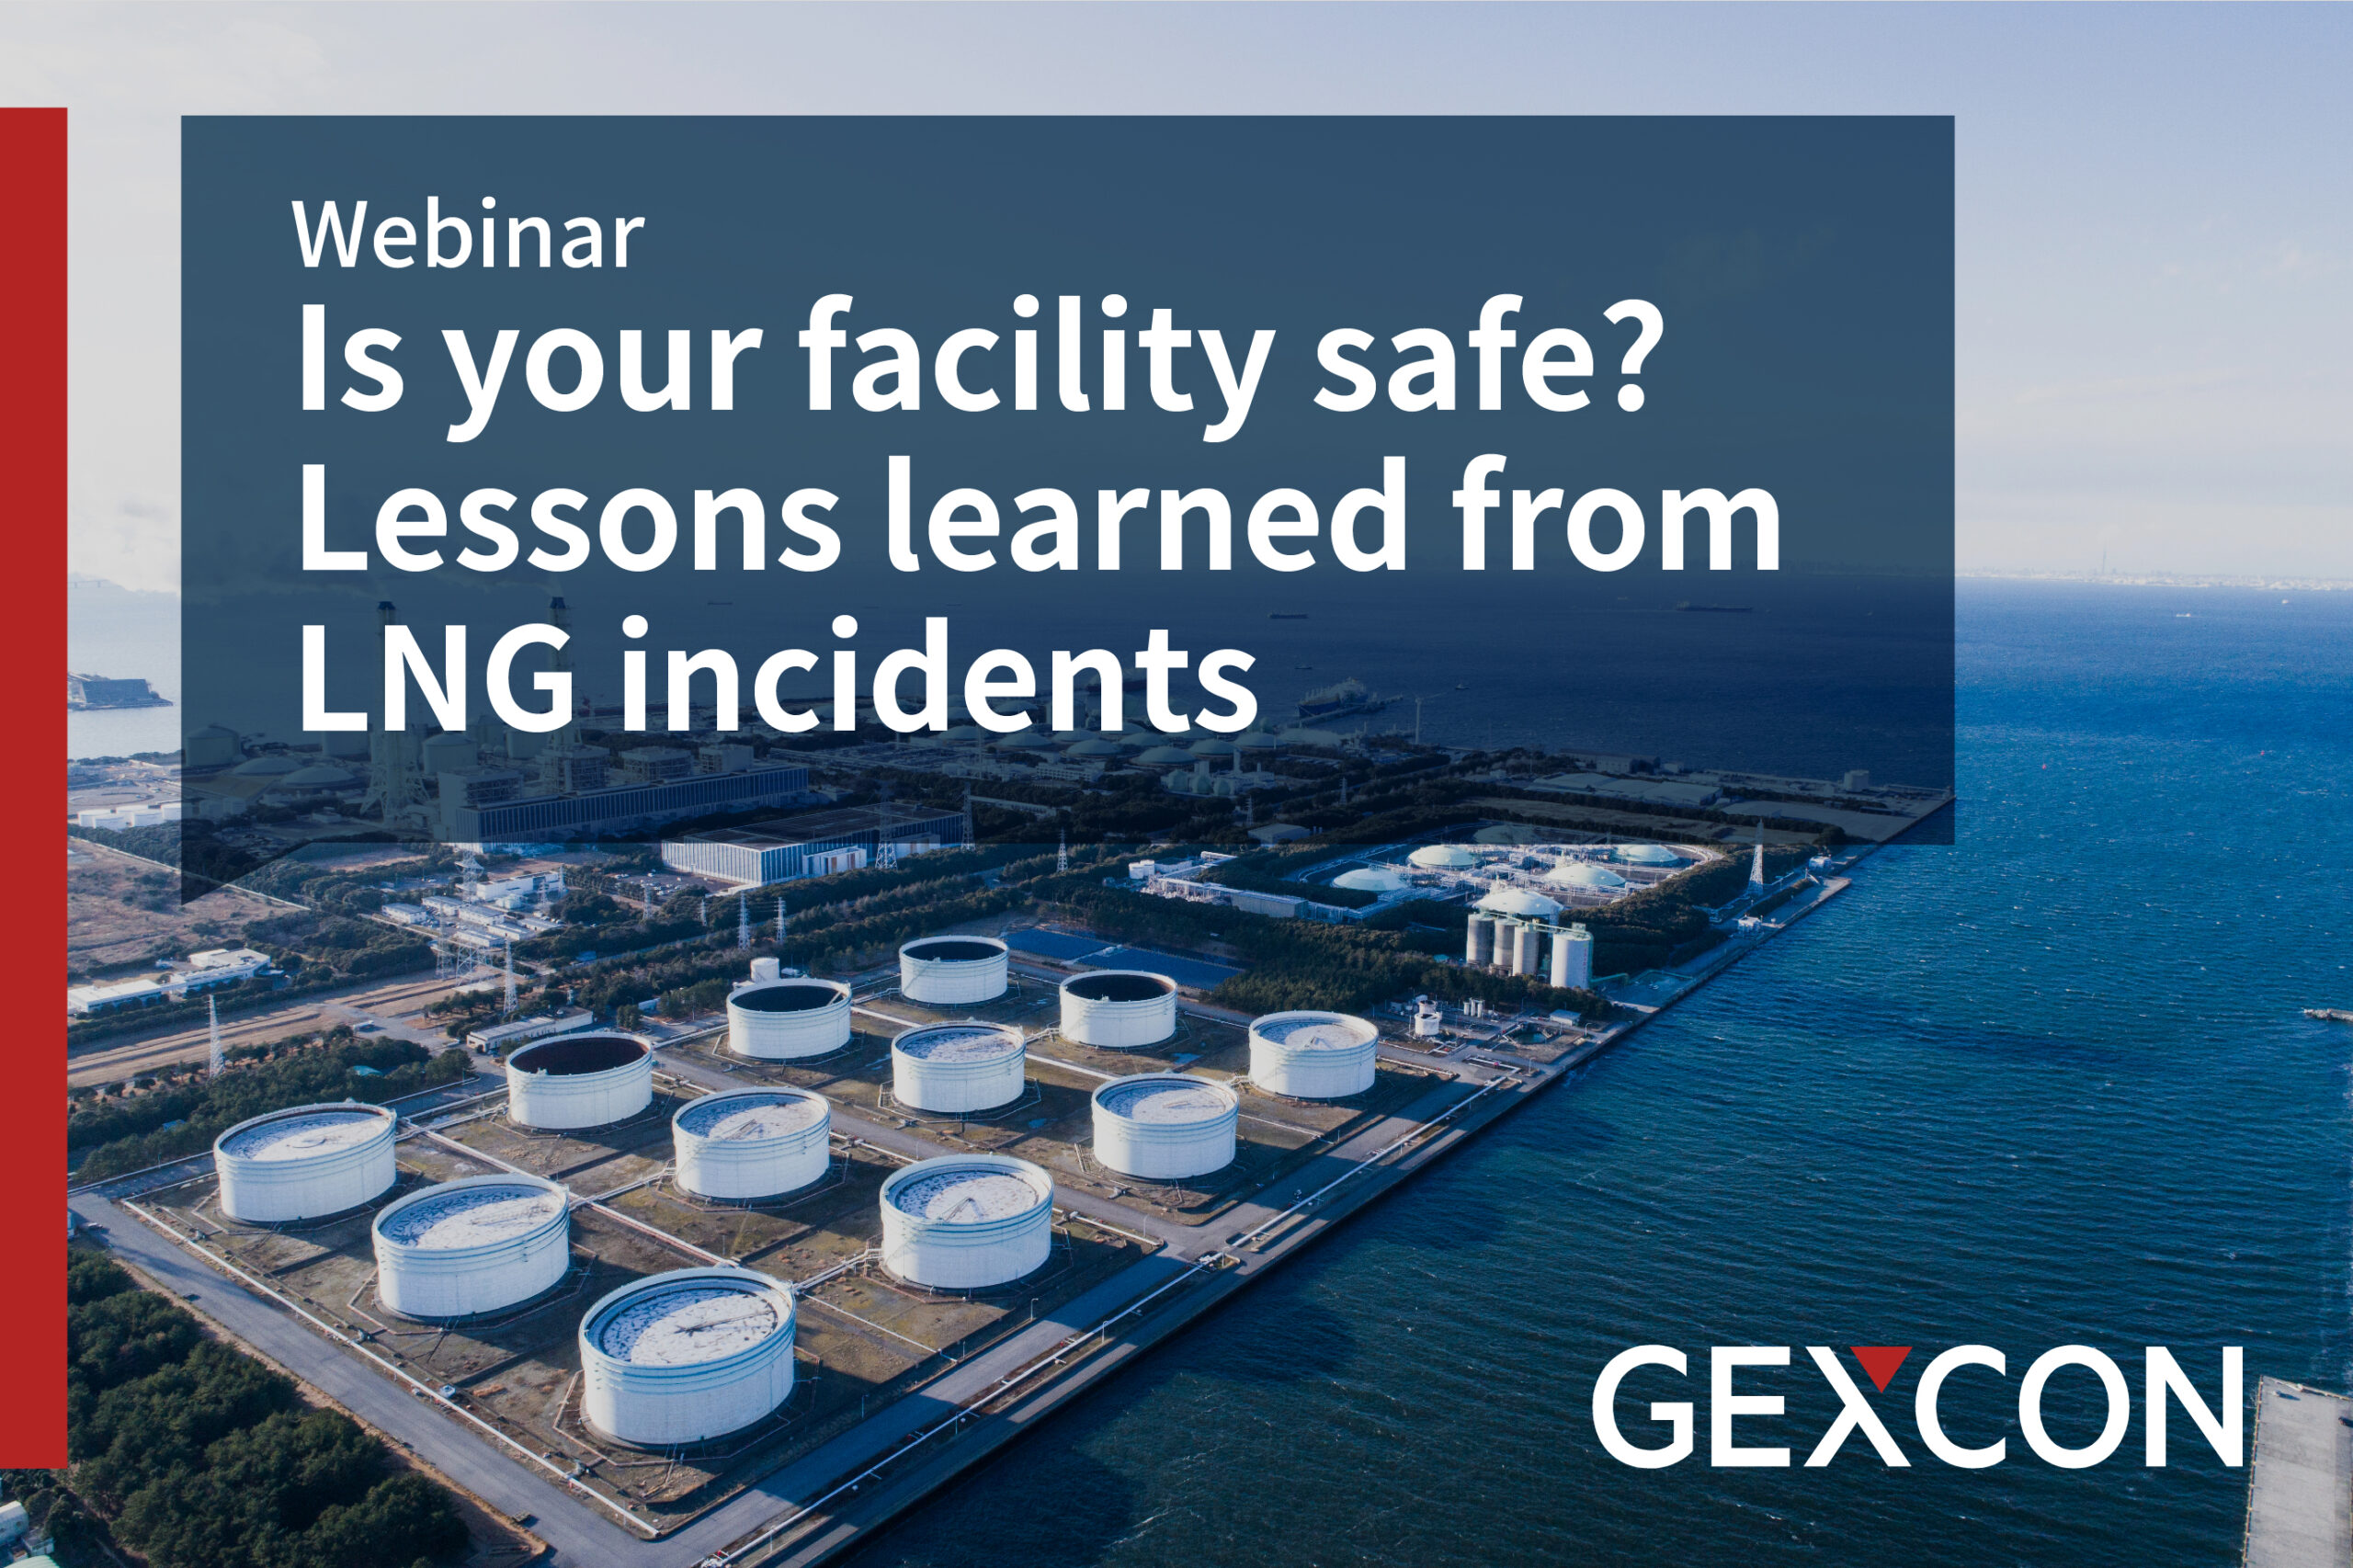 Webinar - Is your facility safe? Lessons learned from LNG incidents